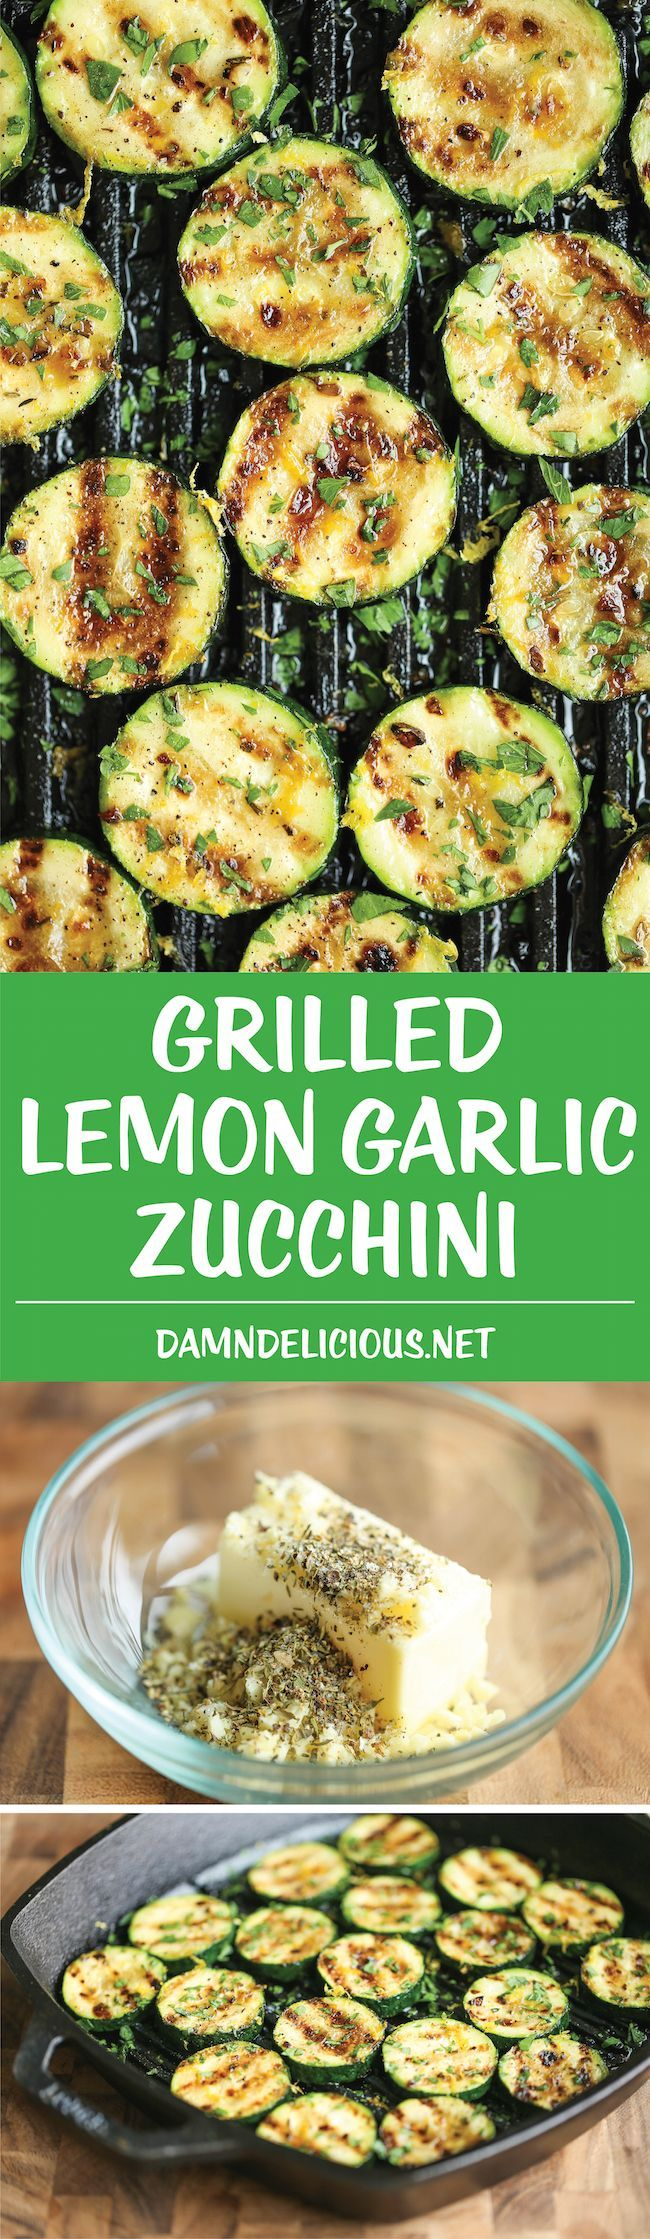 "Grilled Lemon Garlic Zucchini - Amazingly crisp-tender zucchini grilled with a lemon butter garlic sauce - a side dish that will go well with anything!  Brush generously with marinade. Gave it a light coating one time and while it was still ""good"" we weren't as impressed as the first time we made it. -R"